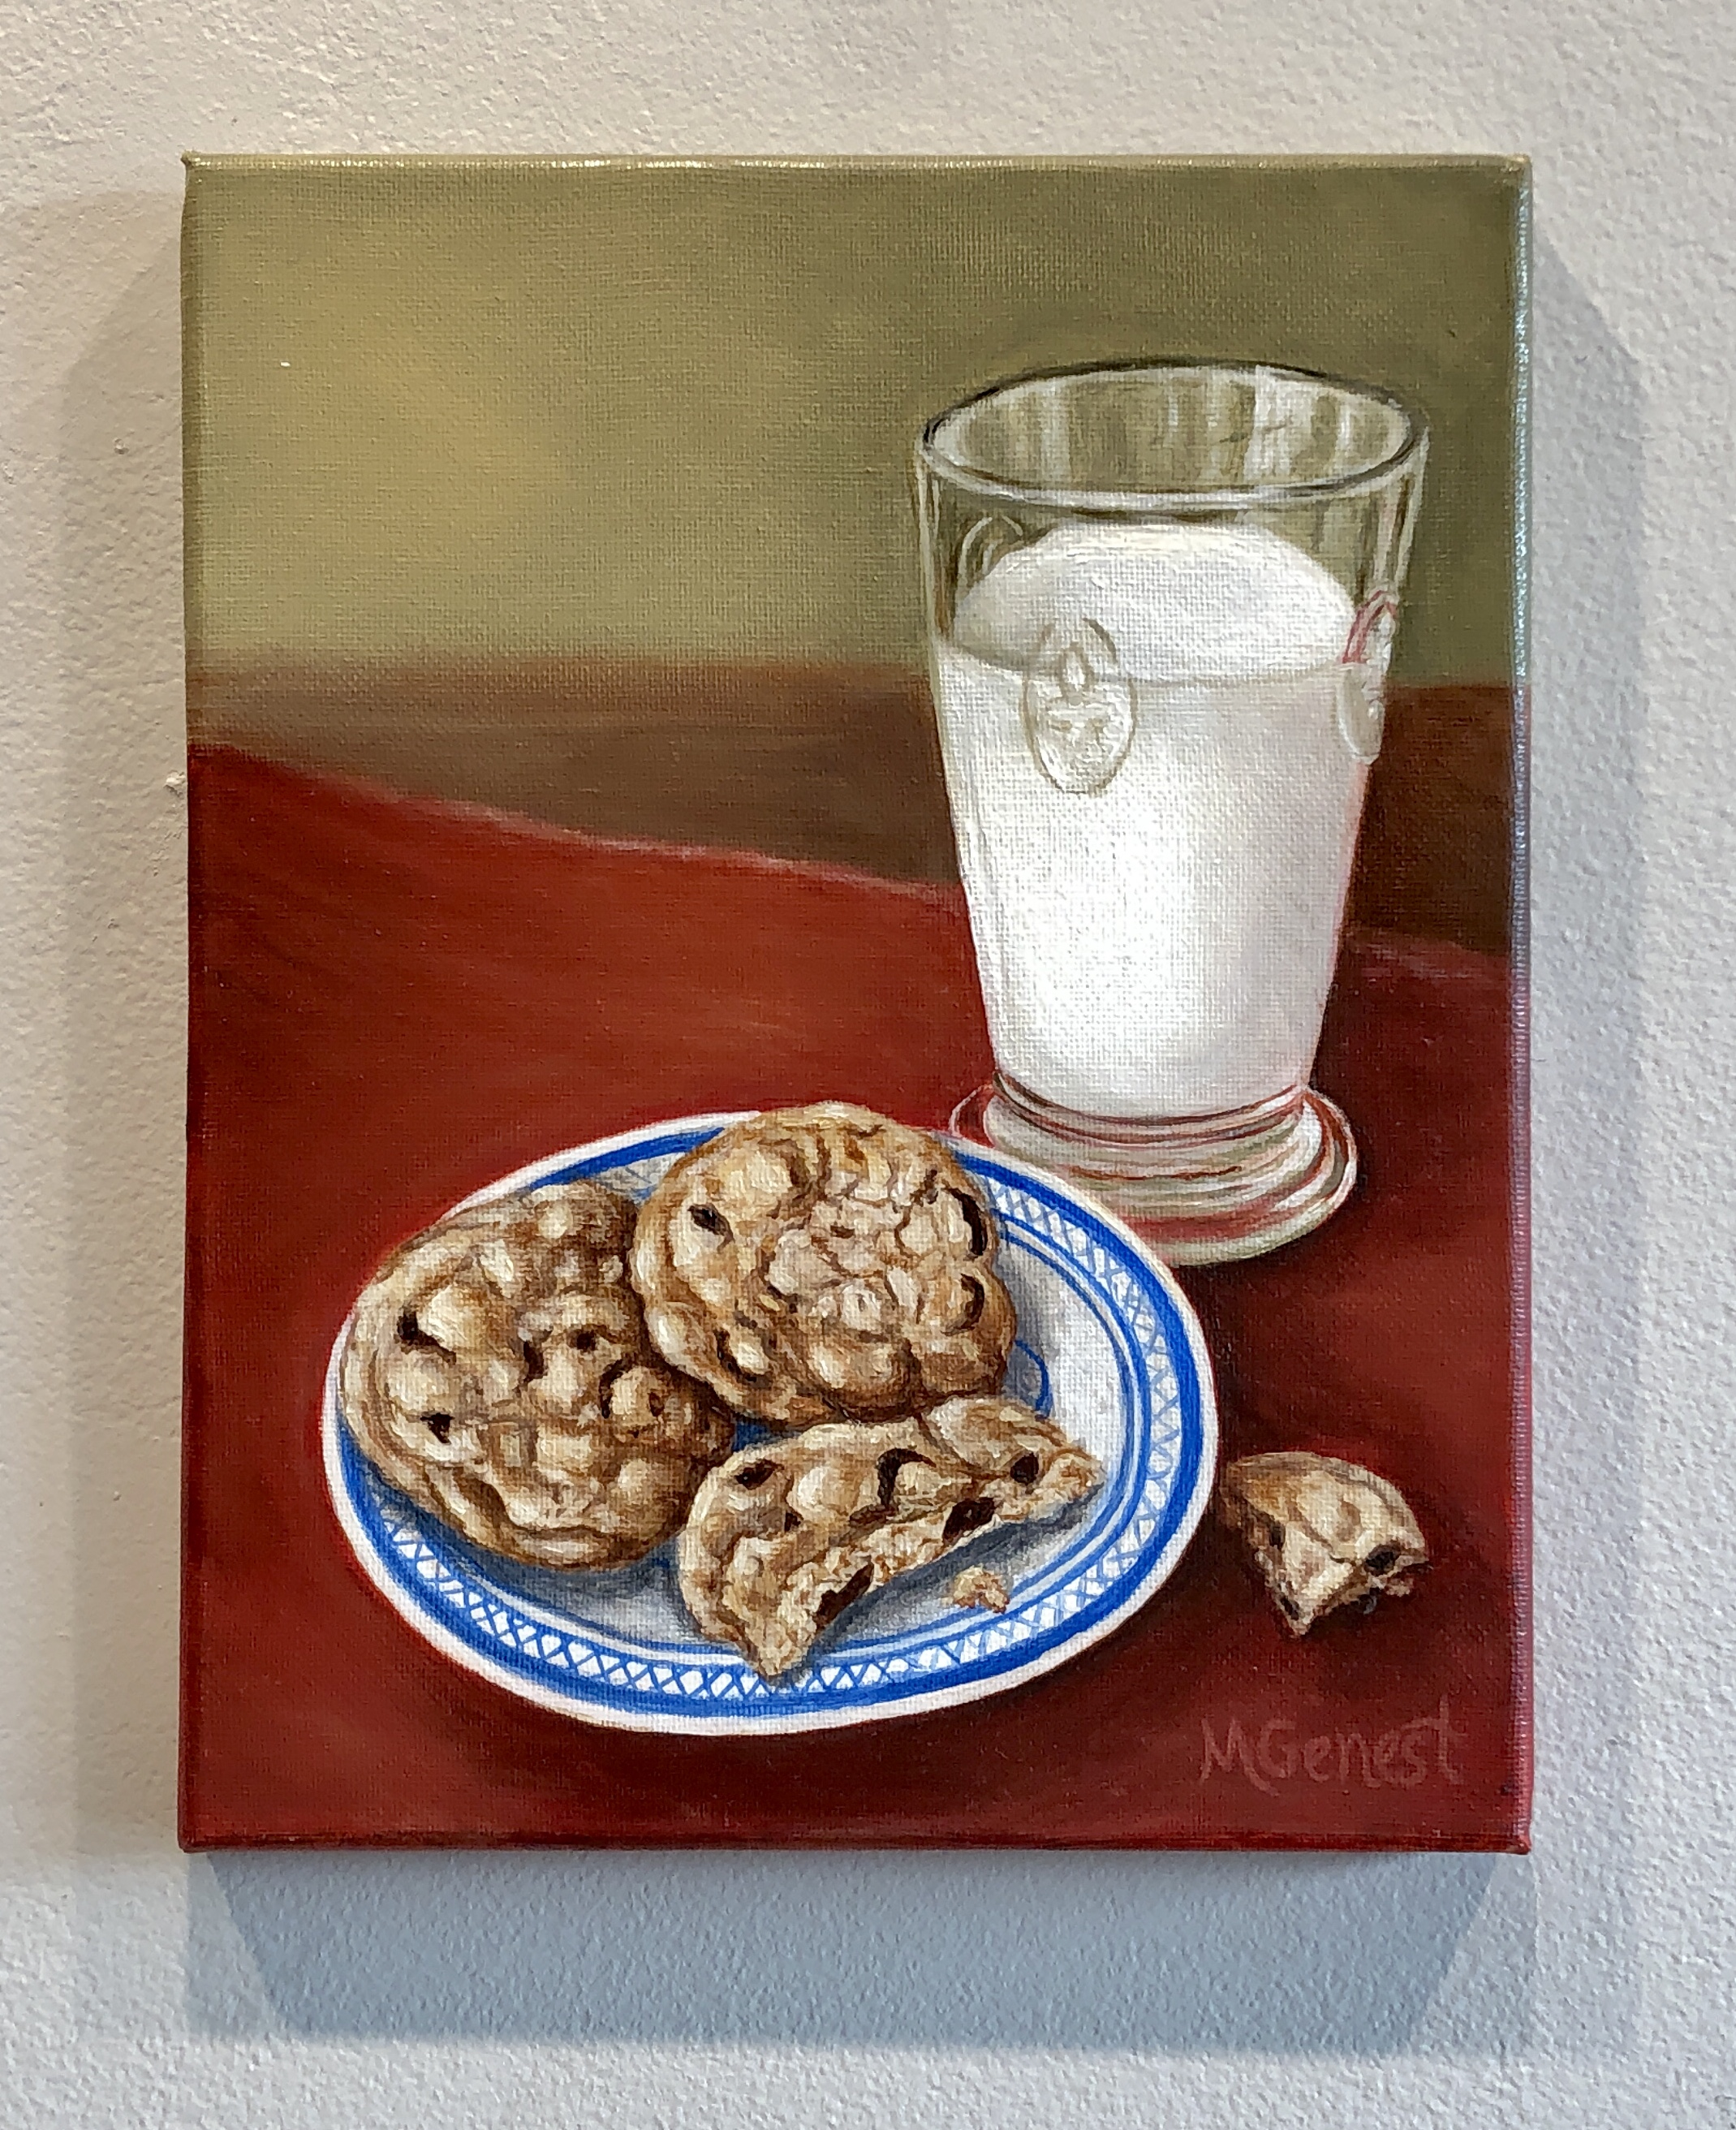 Marguerite Genest - Cookies and Milk